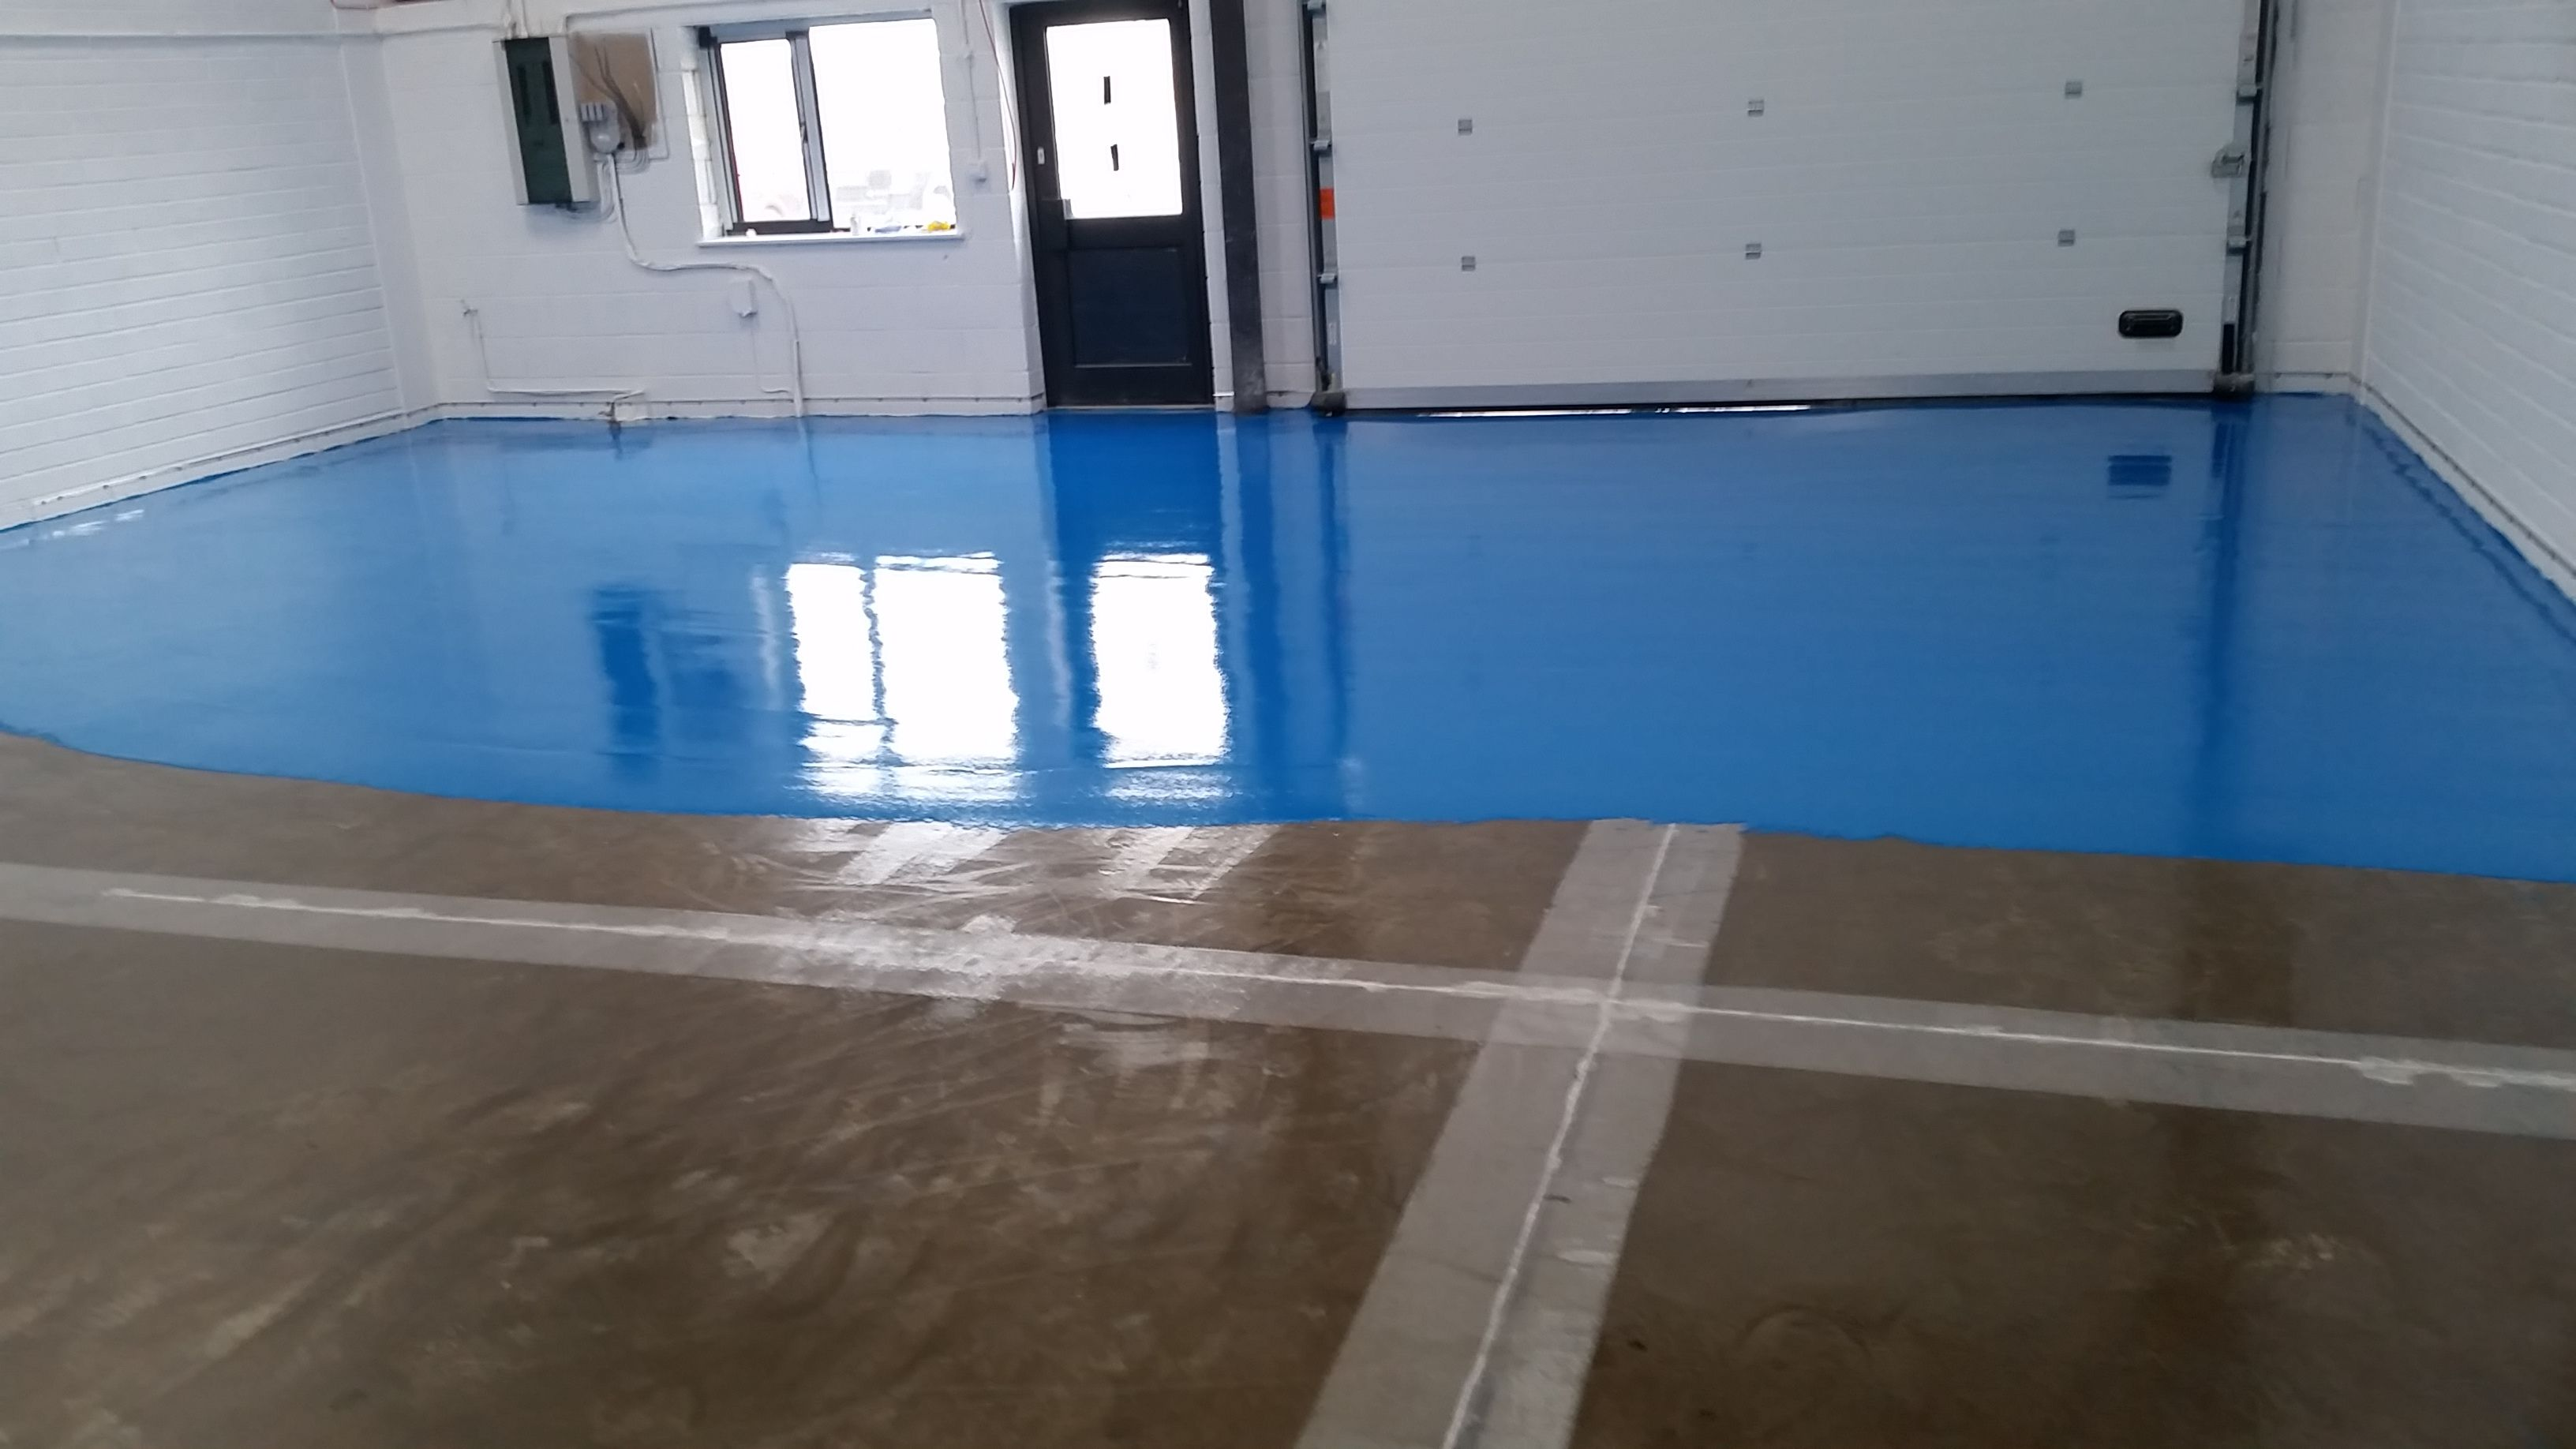 Self Smoothing Polyurethane Resin System Can Be Installed Between 2 And 4mm Thickness Polyurethane Floors Flooring Polyurethane Resin